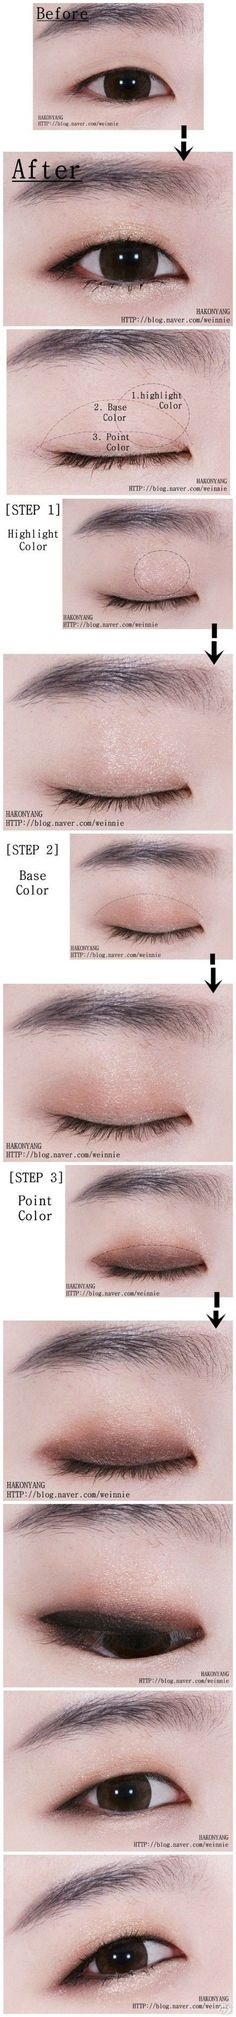 Best Ideas For Makeup Tutorials Picture Description For monolids! - #Makeup https://glamfashion.net/beauty/make-up/best-ideas-for-makeup-tutorials-for-monolids-2/